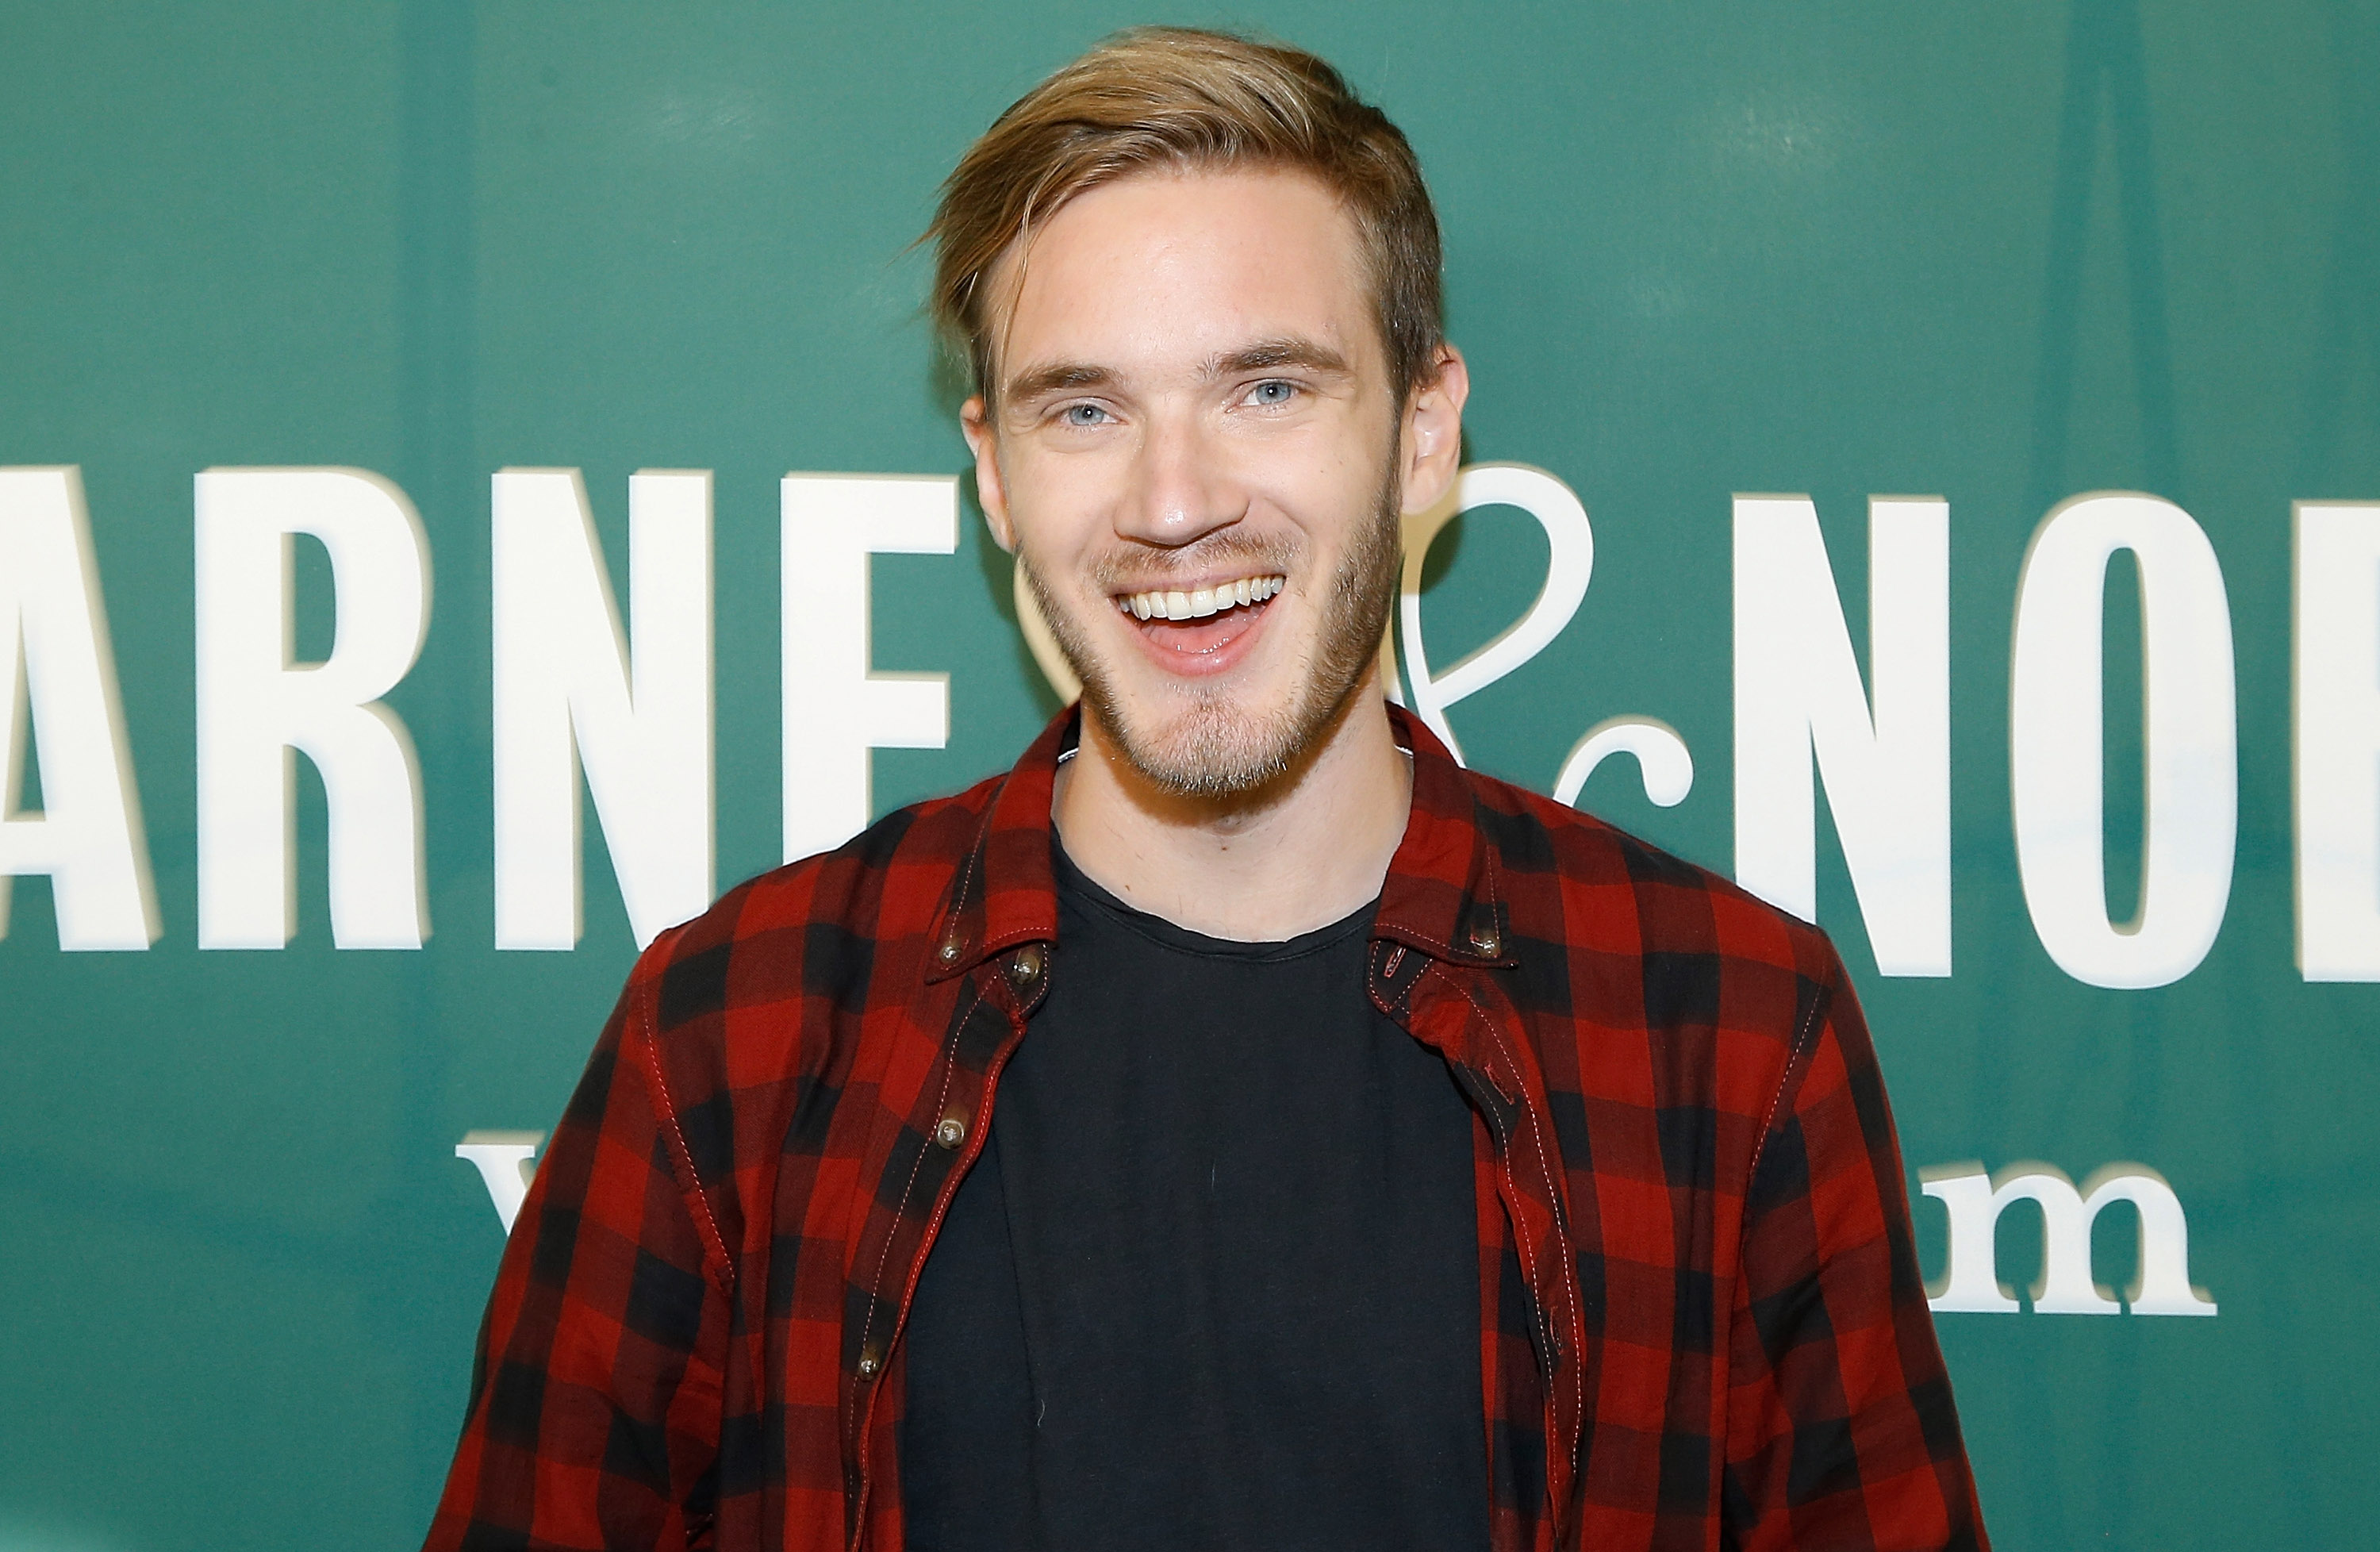 Disney severs ties with PewDiePie after anti-Semitic videos (update)